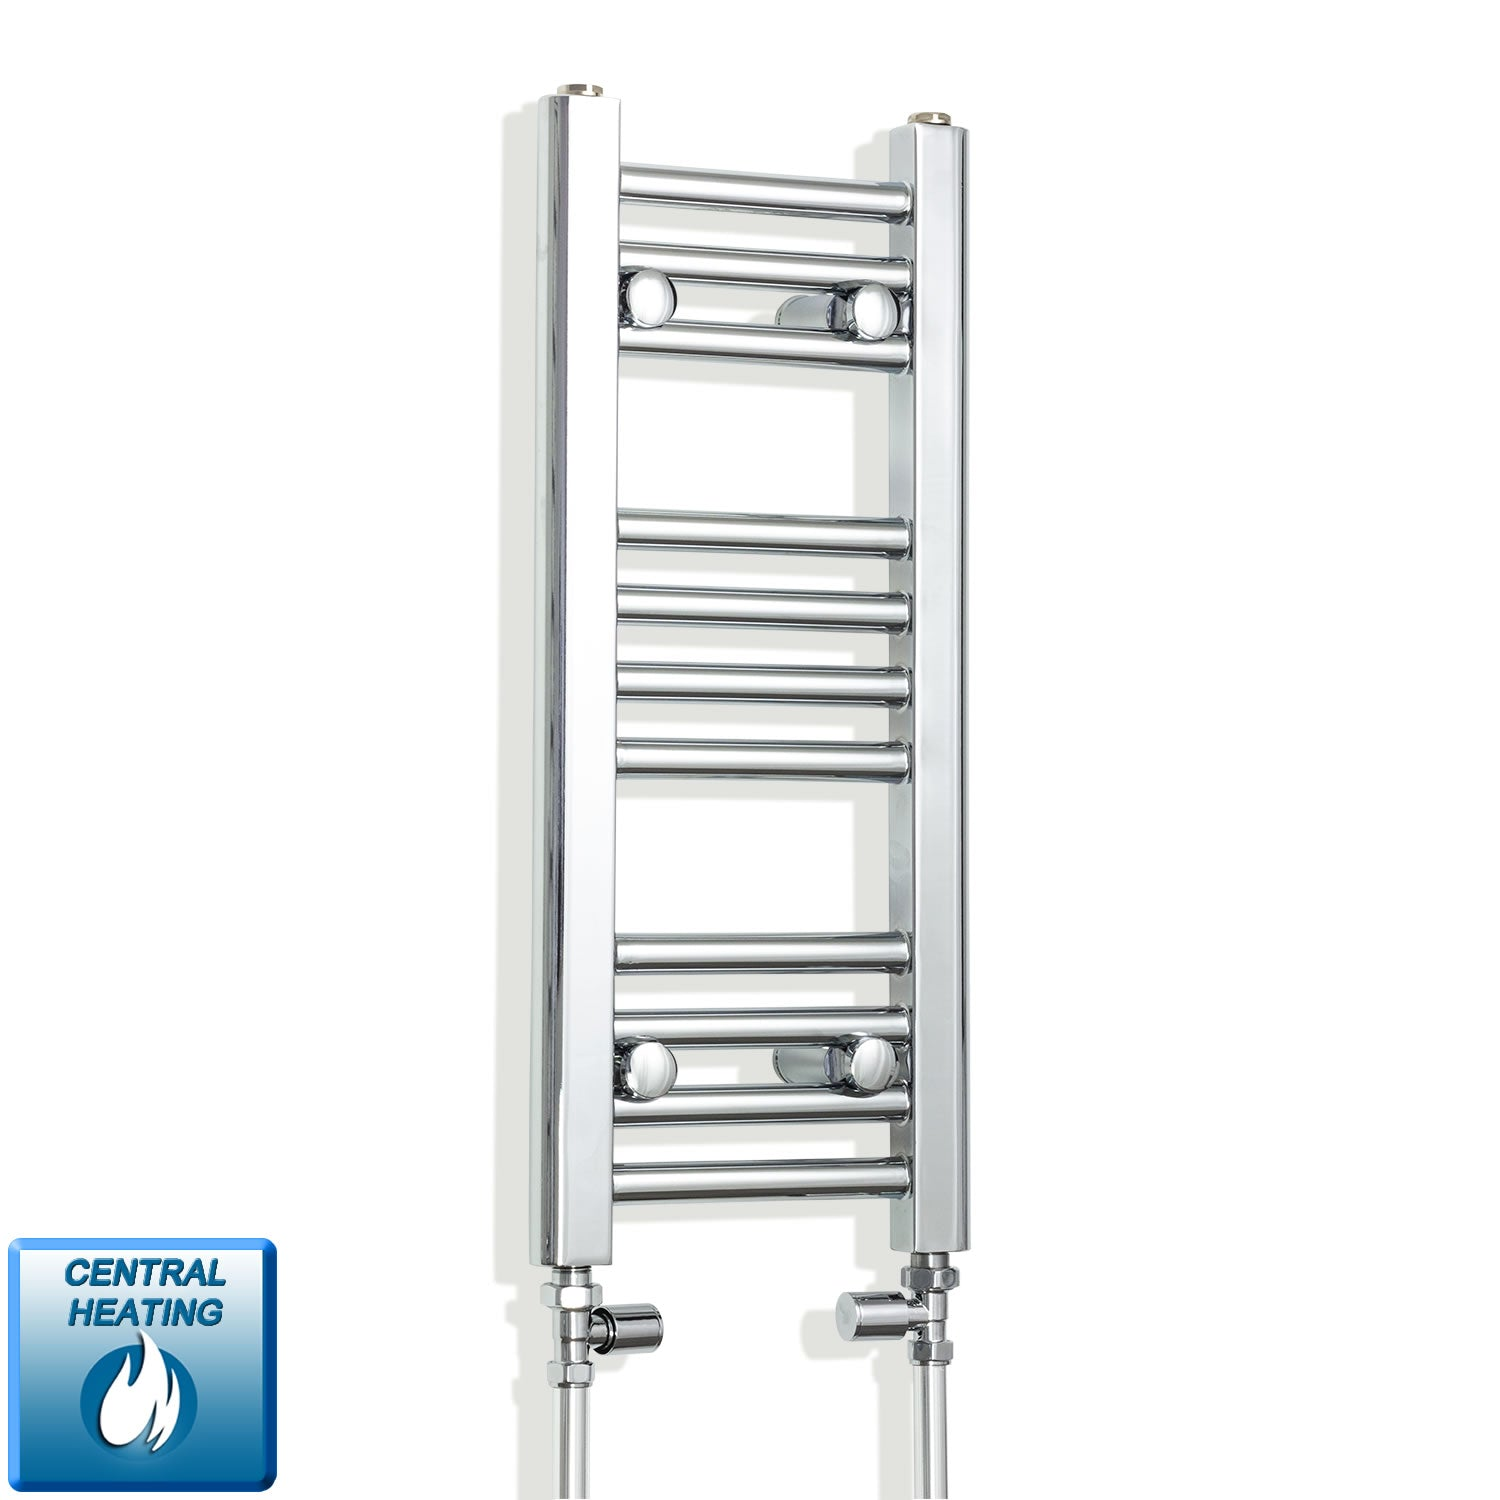 200mm Wide 600mm High Flat Chrome Heated Towel Rail Radiator,With Straight Valve